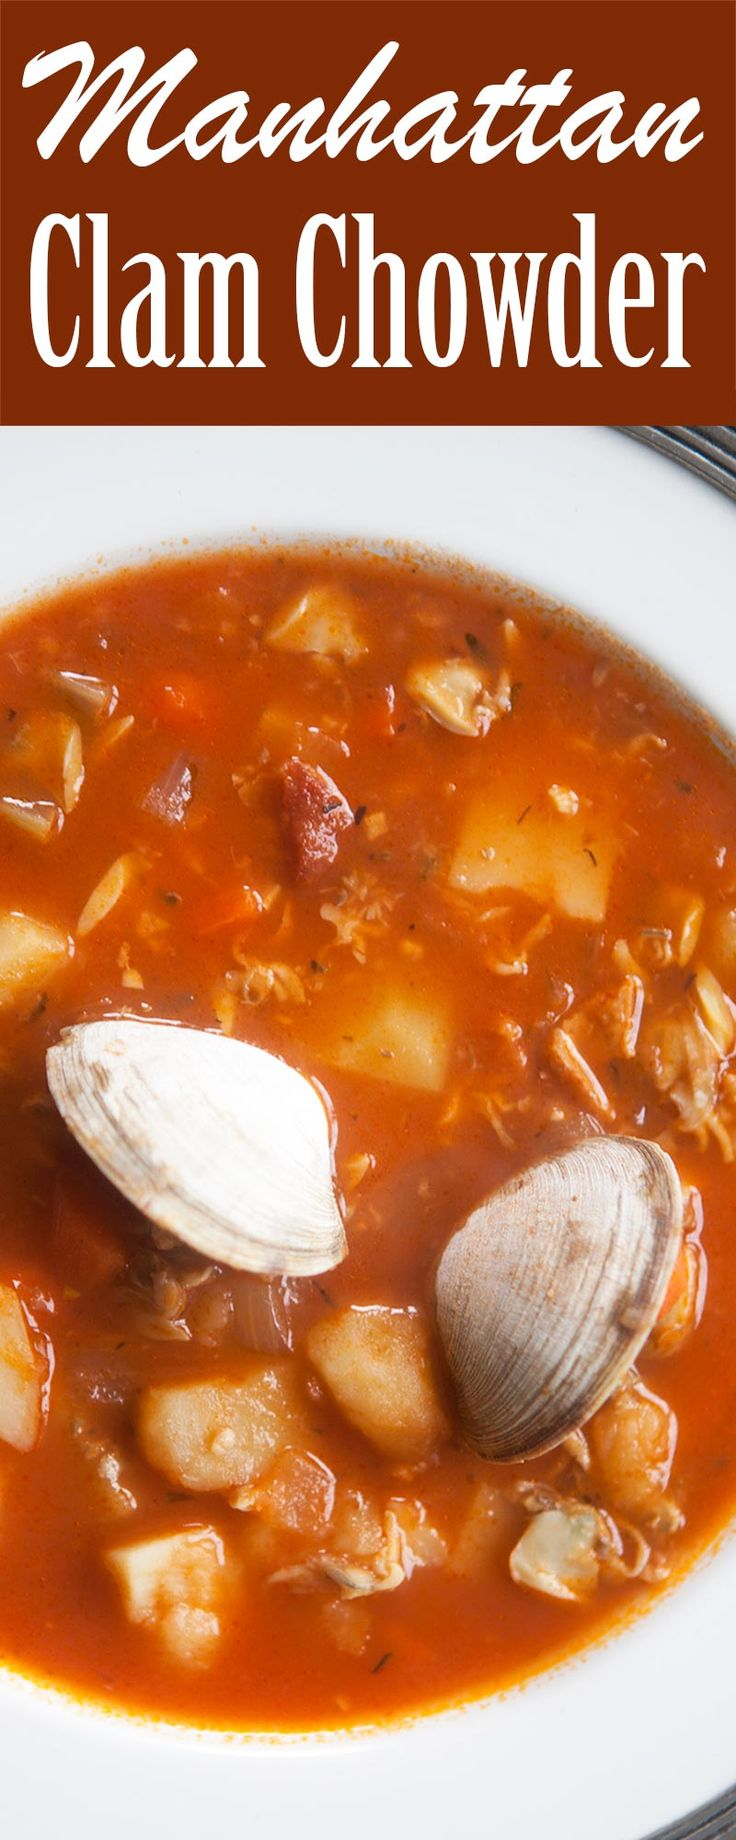 Manhattan Clam Chowder! Clam chowder in a tomato-based sauce with potatoes, onions, carrots, celery, and a little bacon. So good!